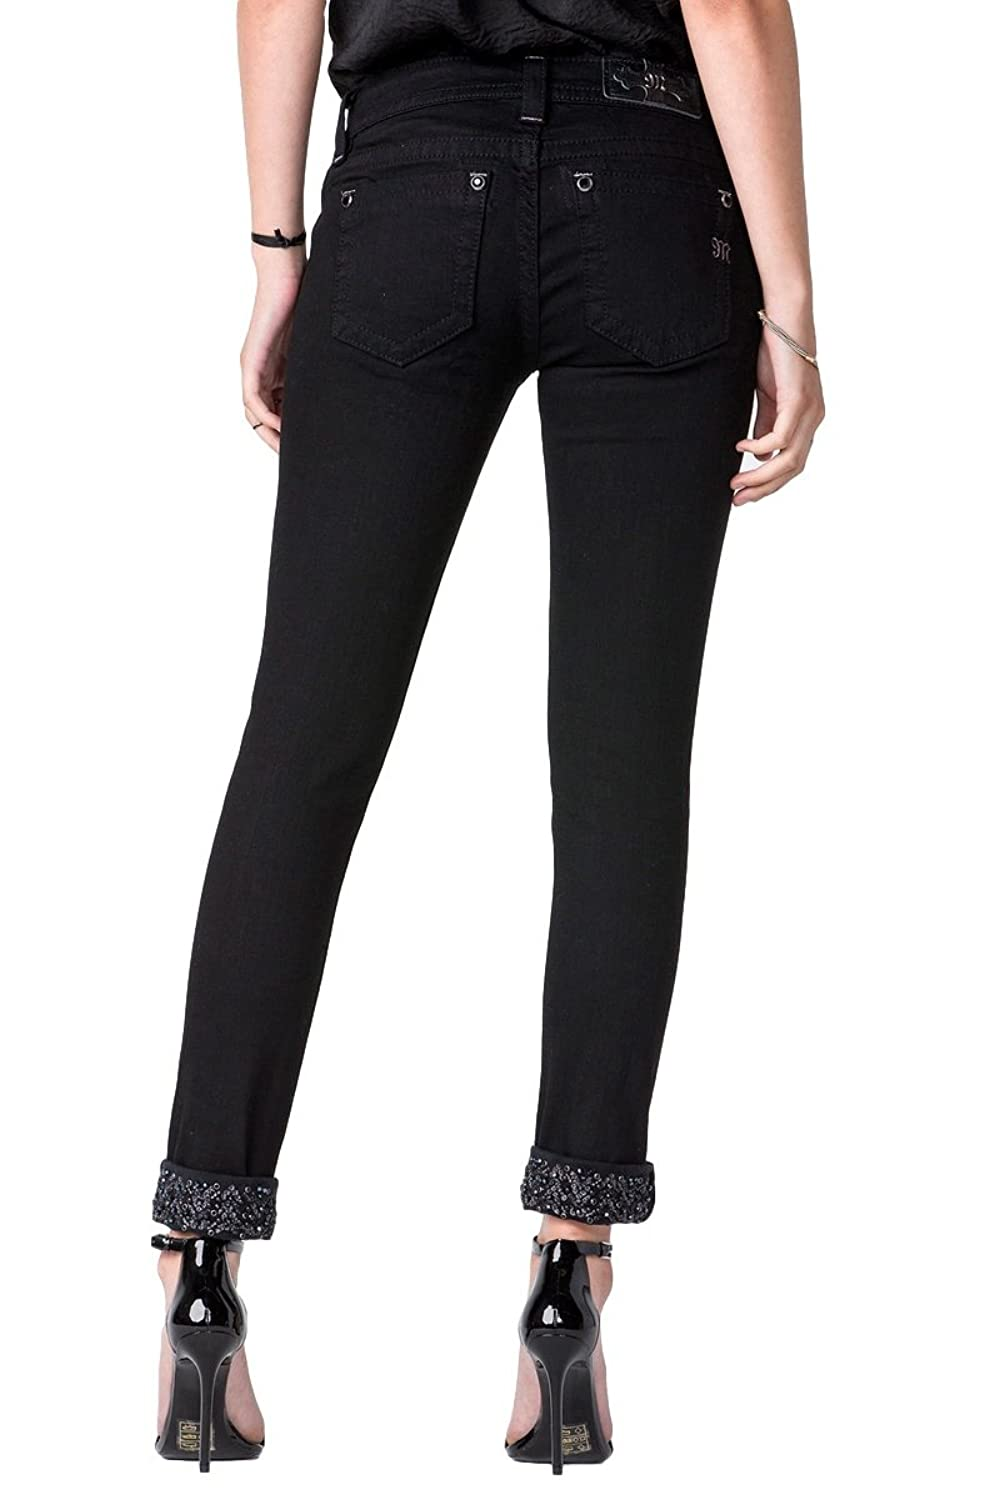 Miss Me Jeans Women's Exteded Sizes Modern Mix Ankle Skinny Sequin Cuffed Black